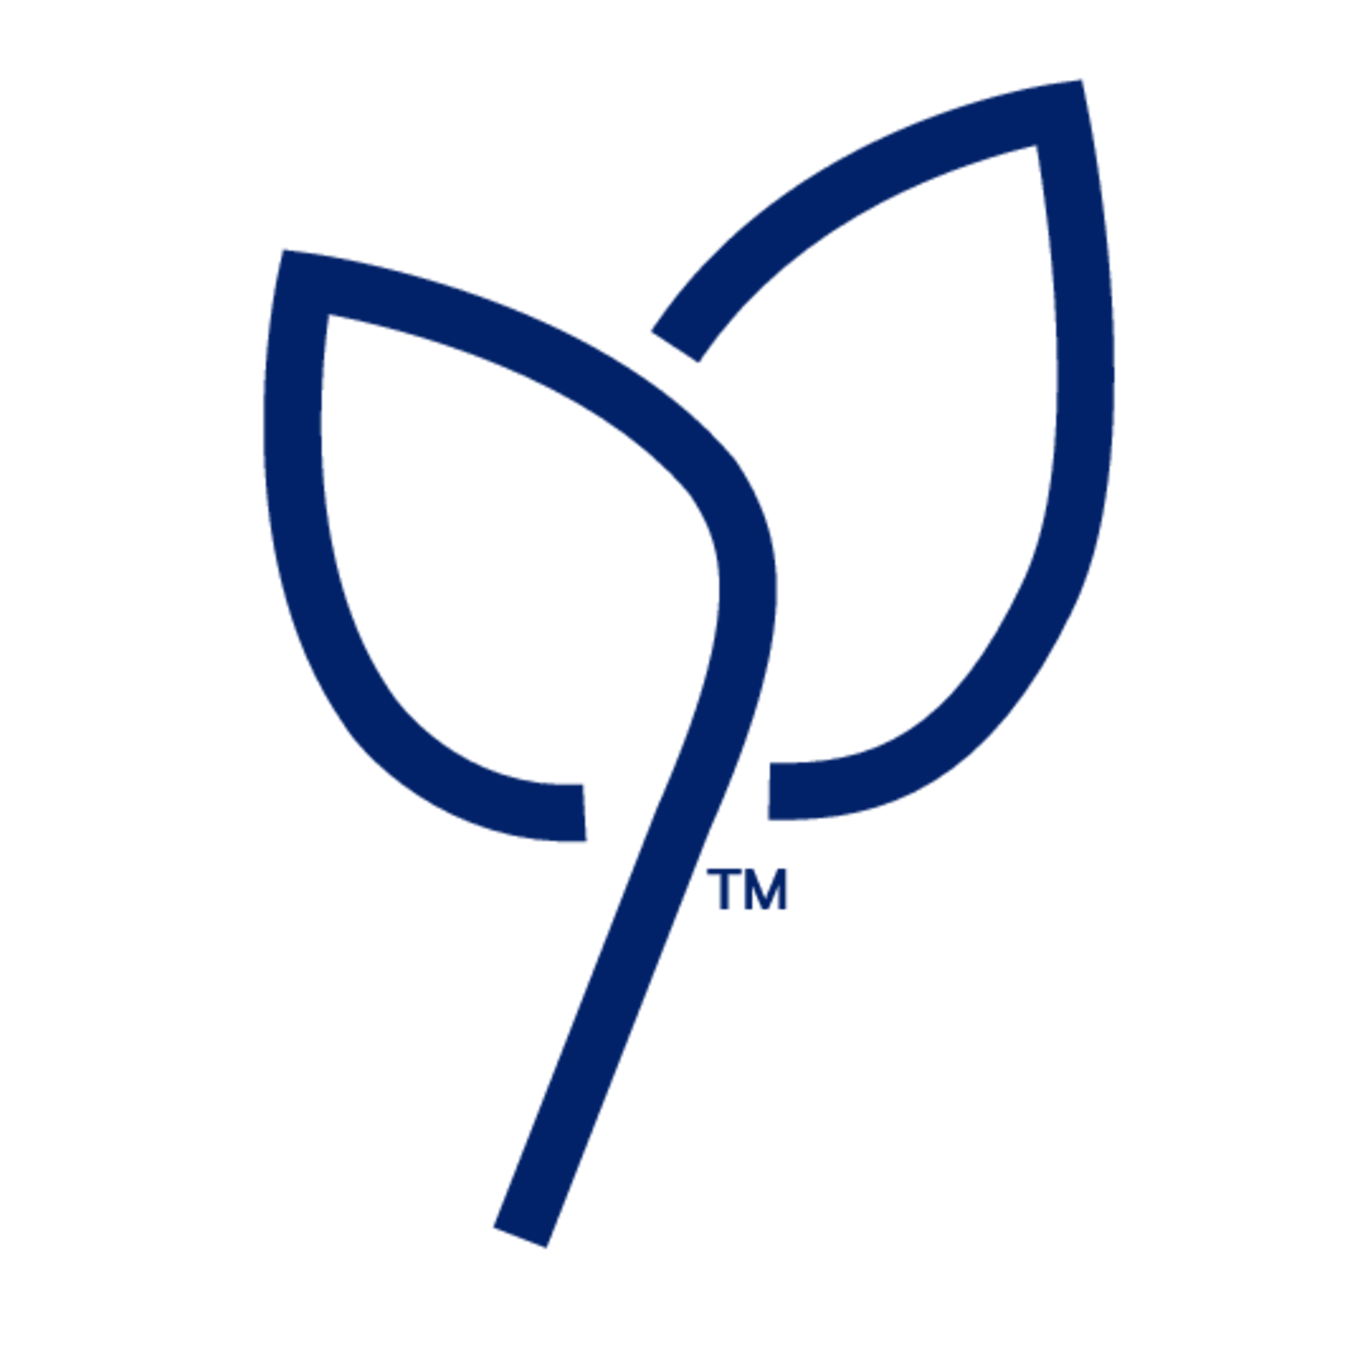 A blue icon of two leaves.